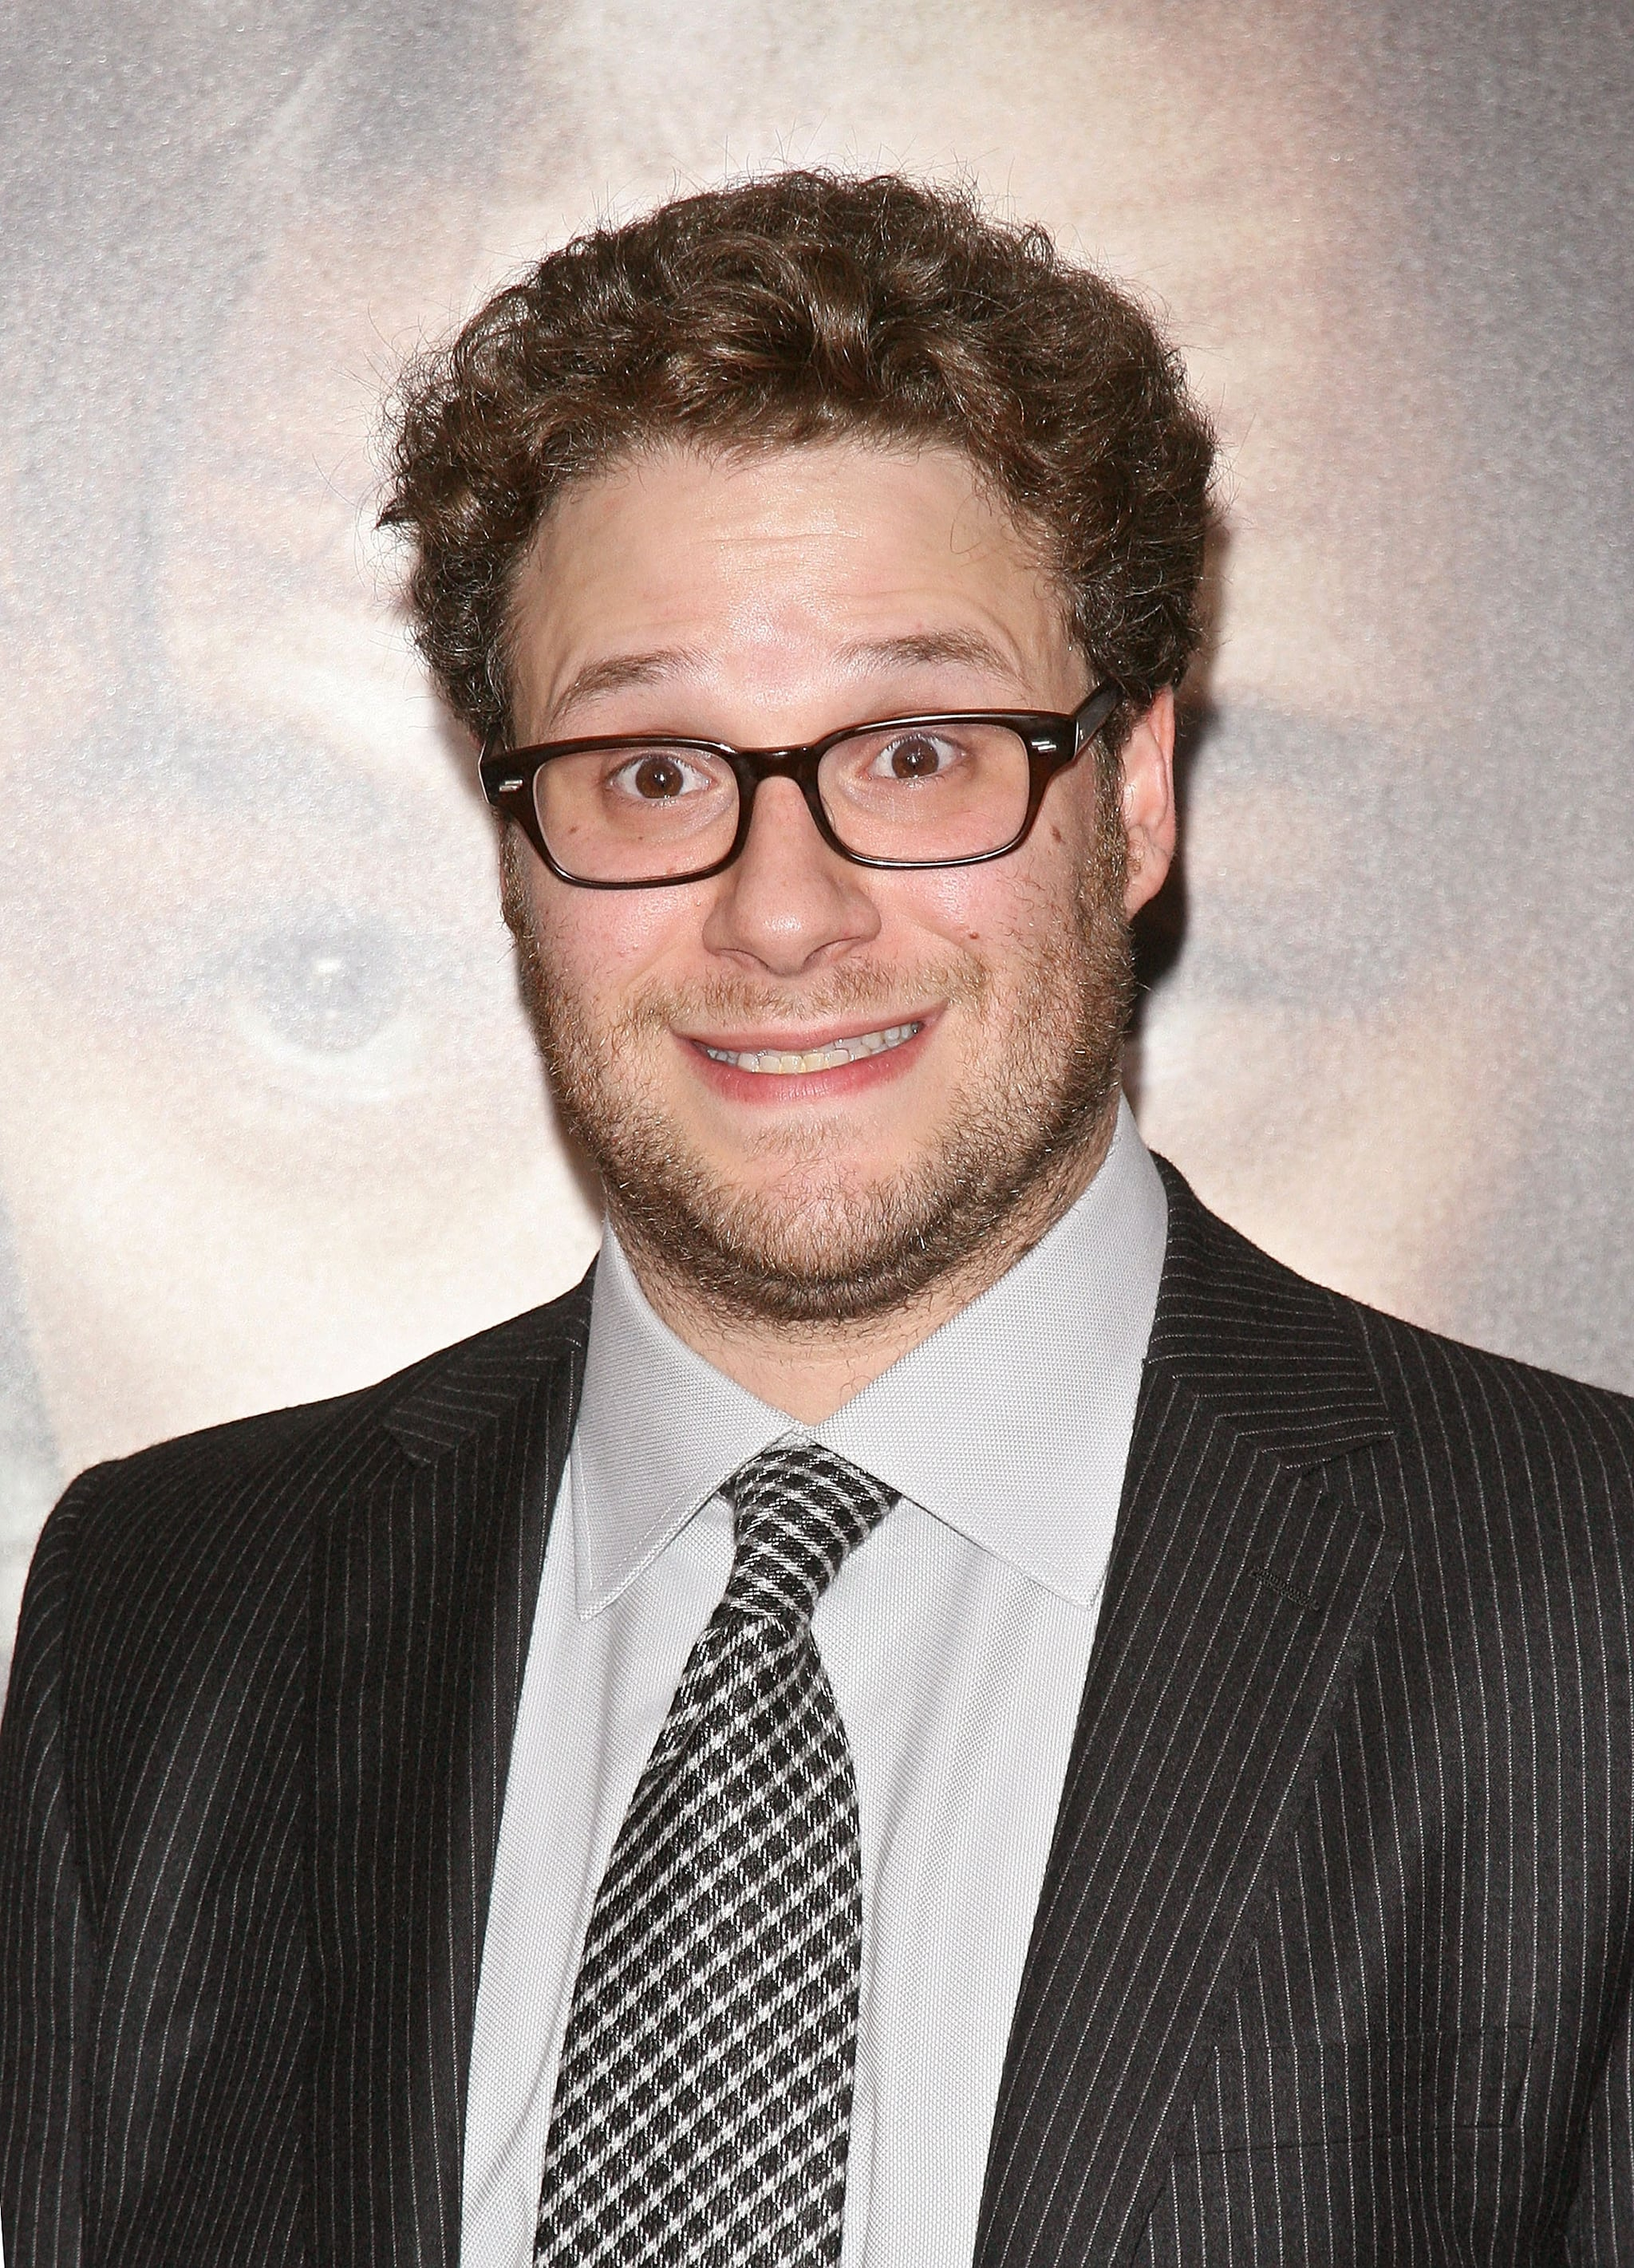 Seth Rogen made funny faces on the red carpet at the 50/50 premiere in NYC.